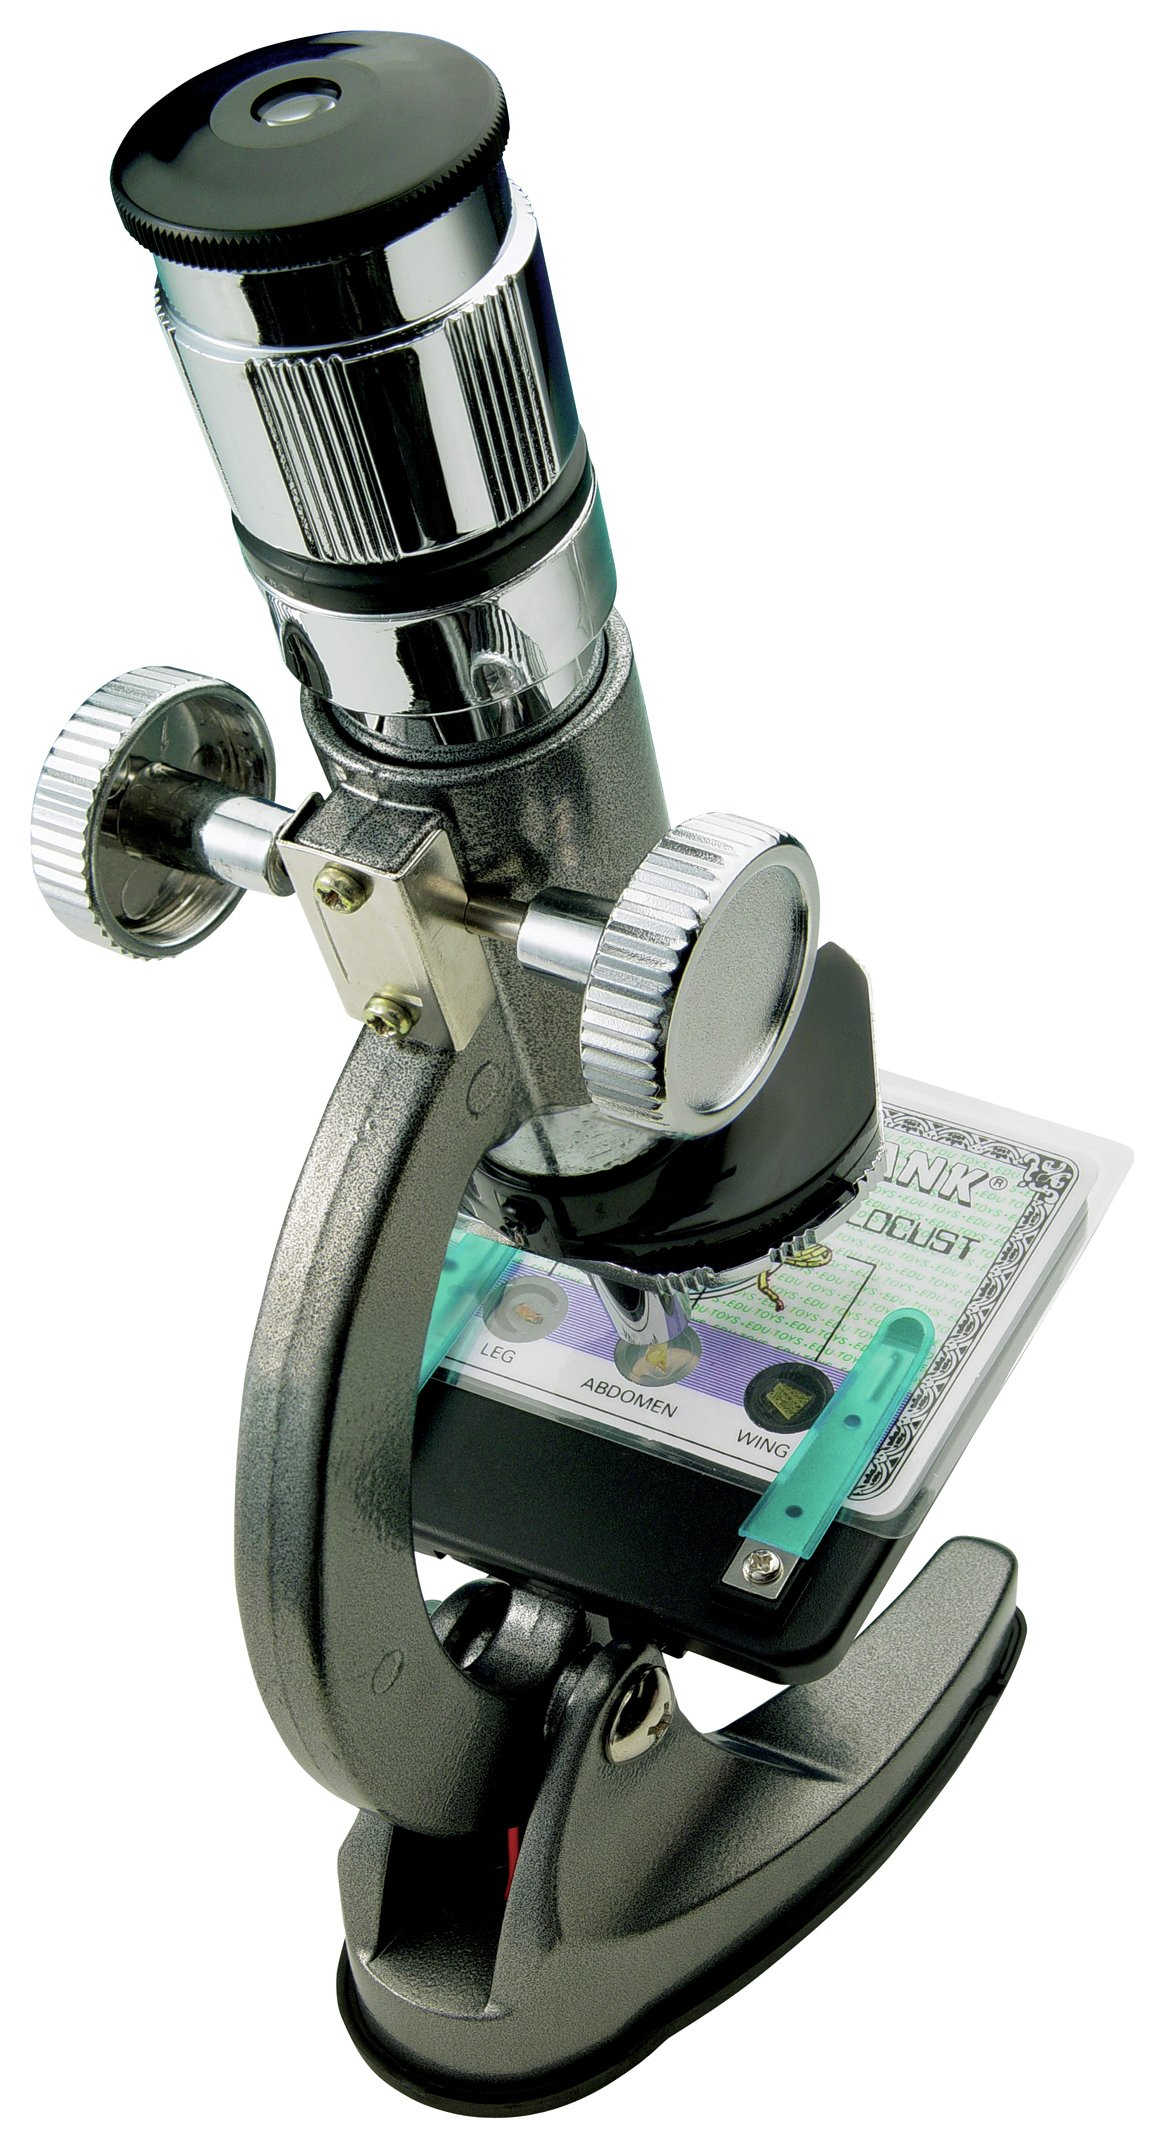 100x to 900x Zoom Diecast Microscope Set.